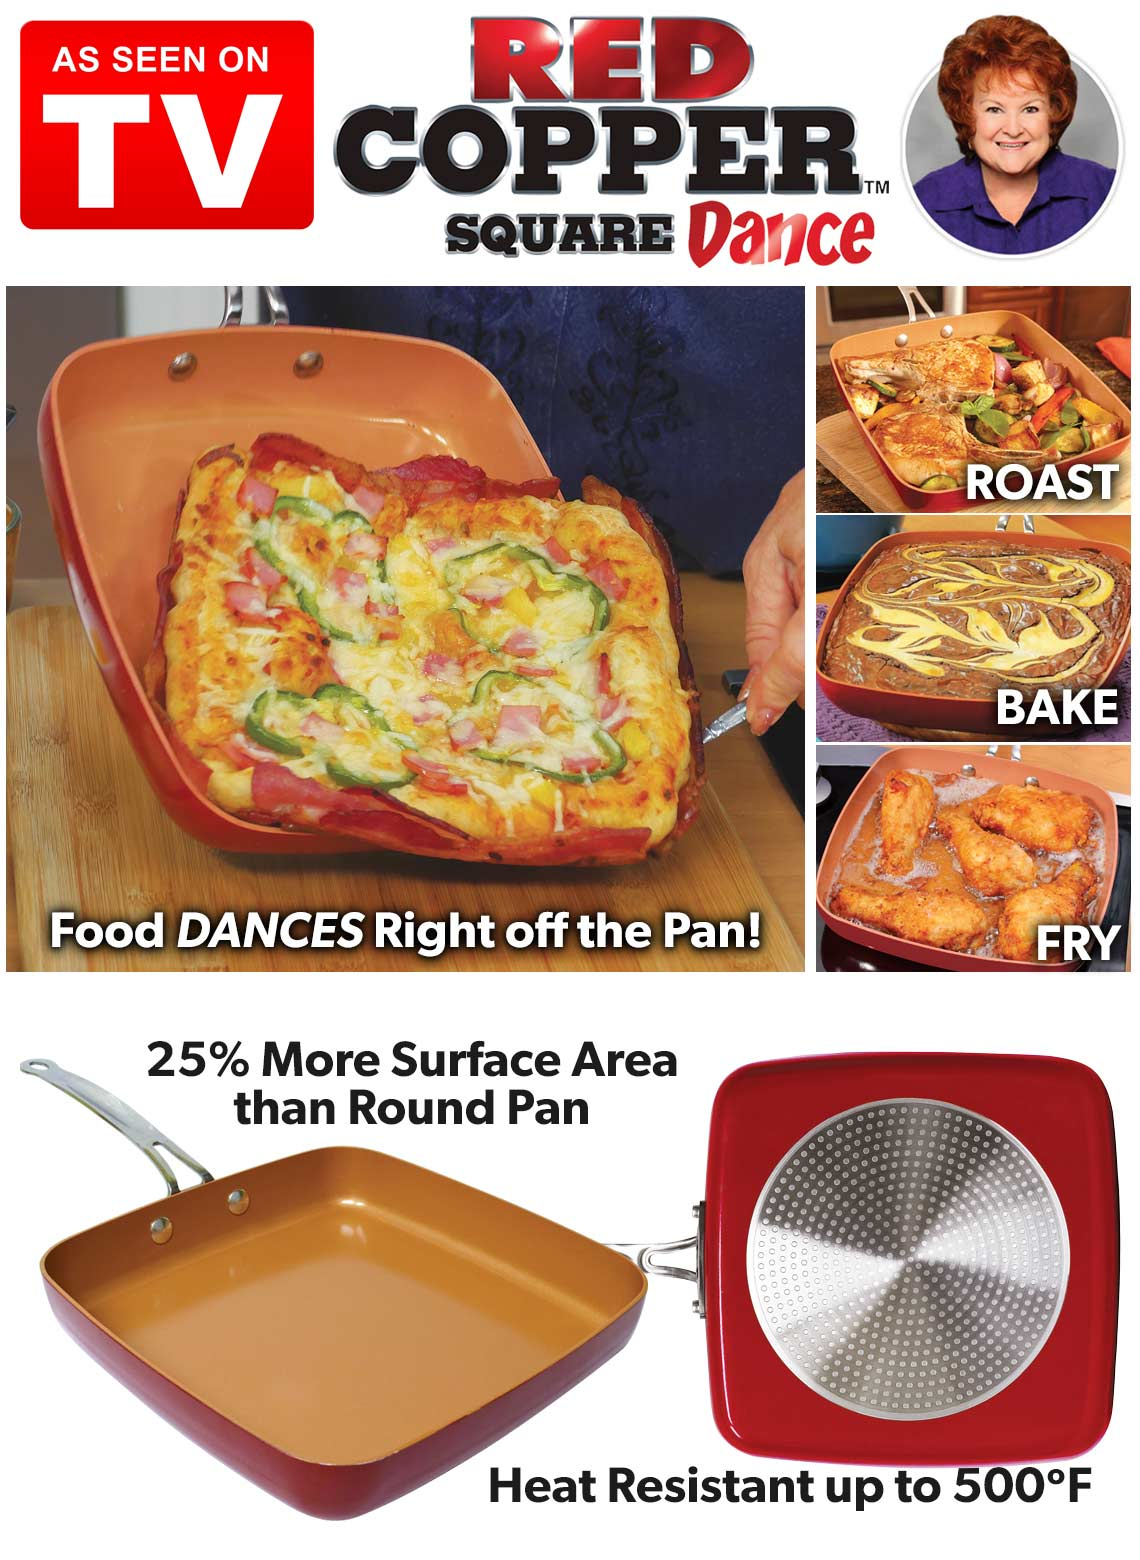 Red Copper Square Dance Pan Carolwrightgifts Com